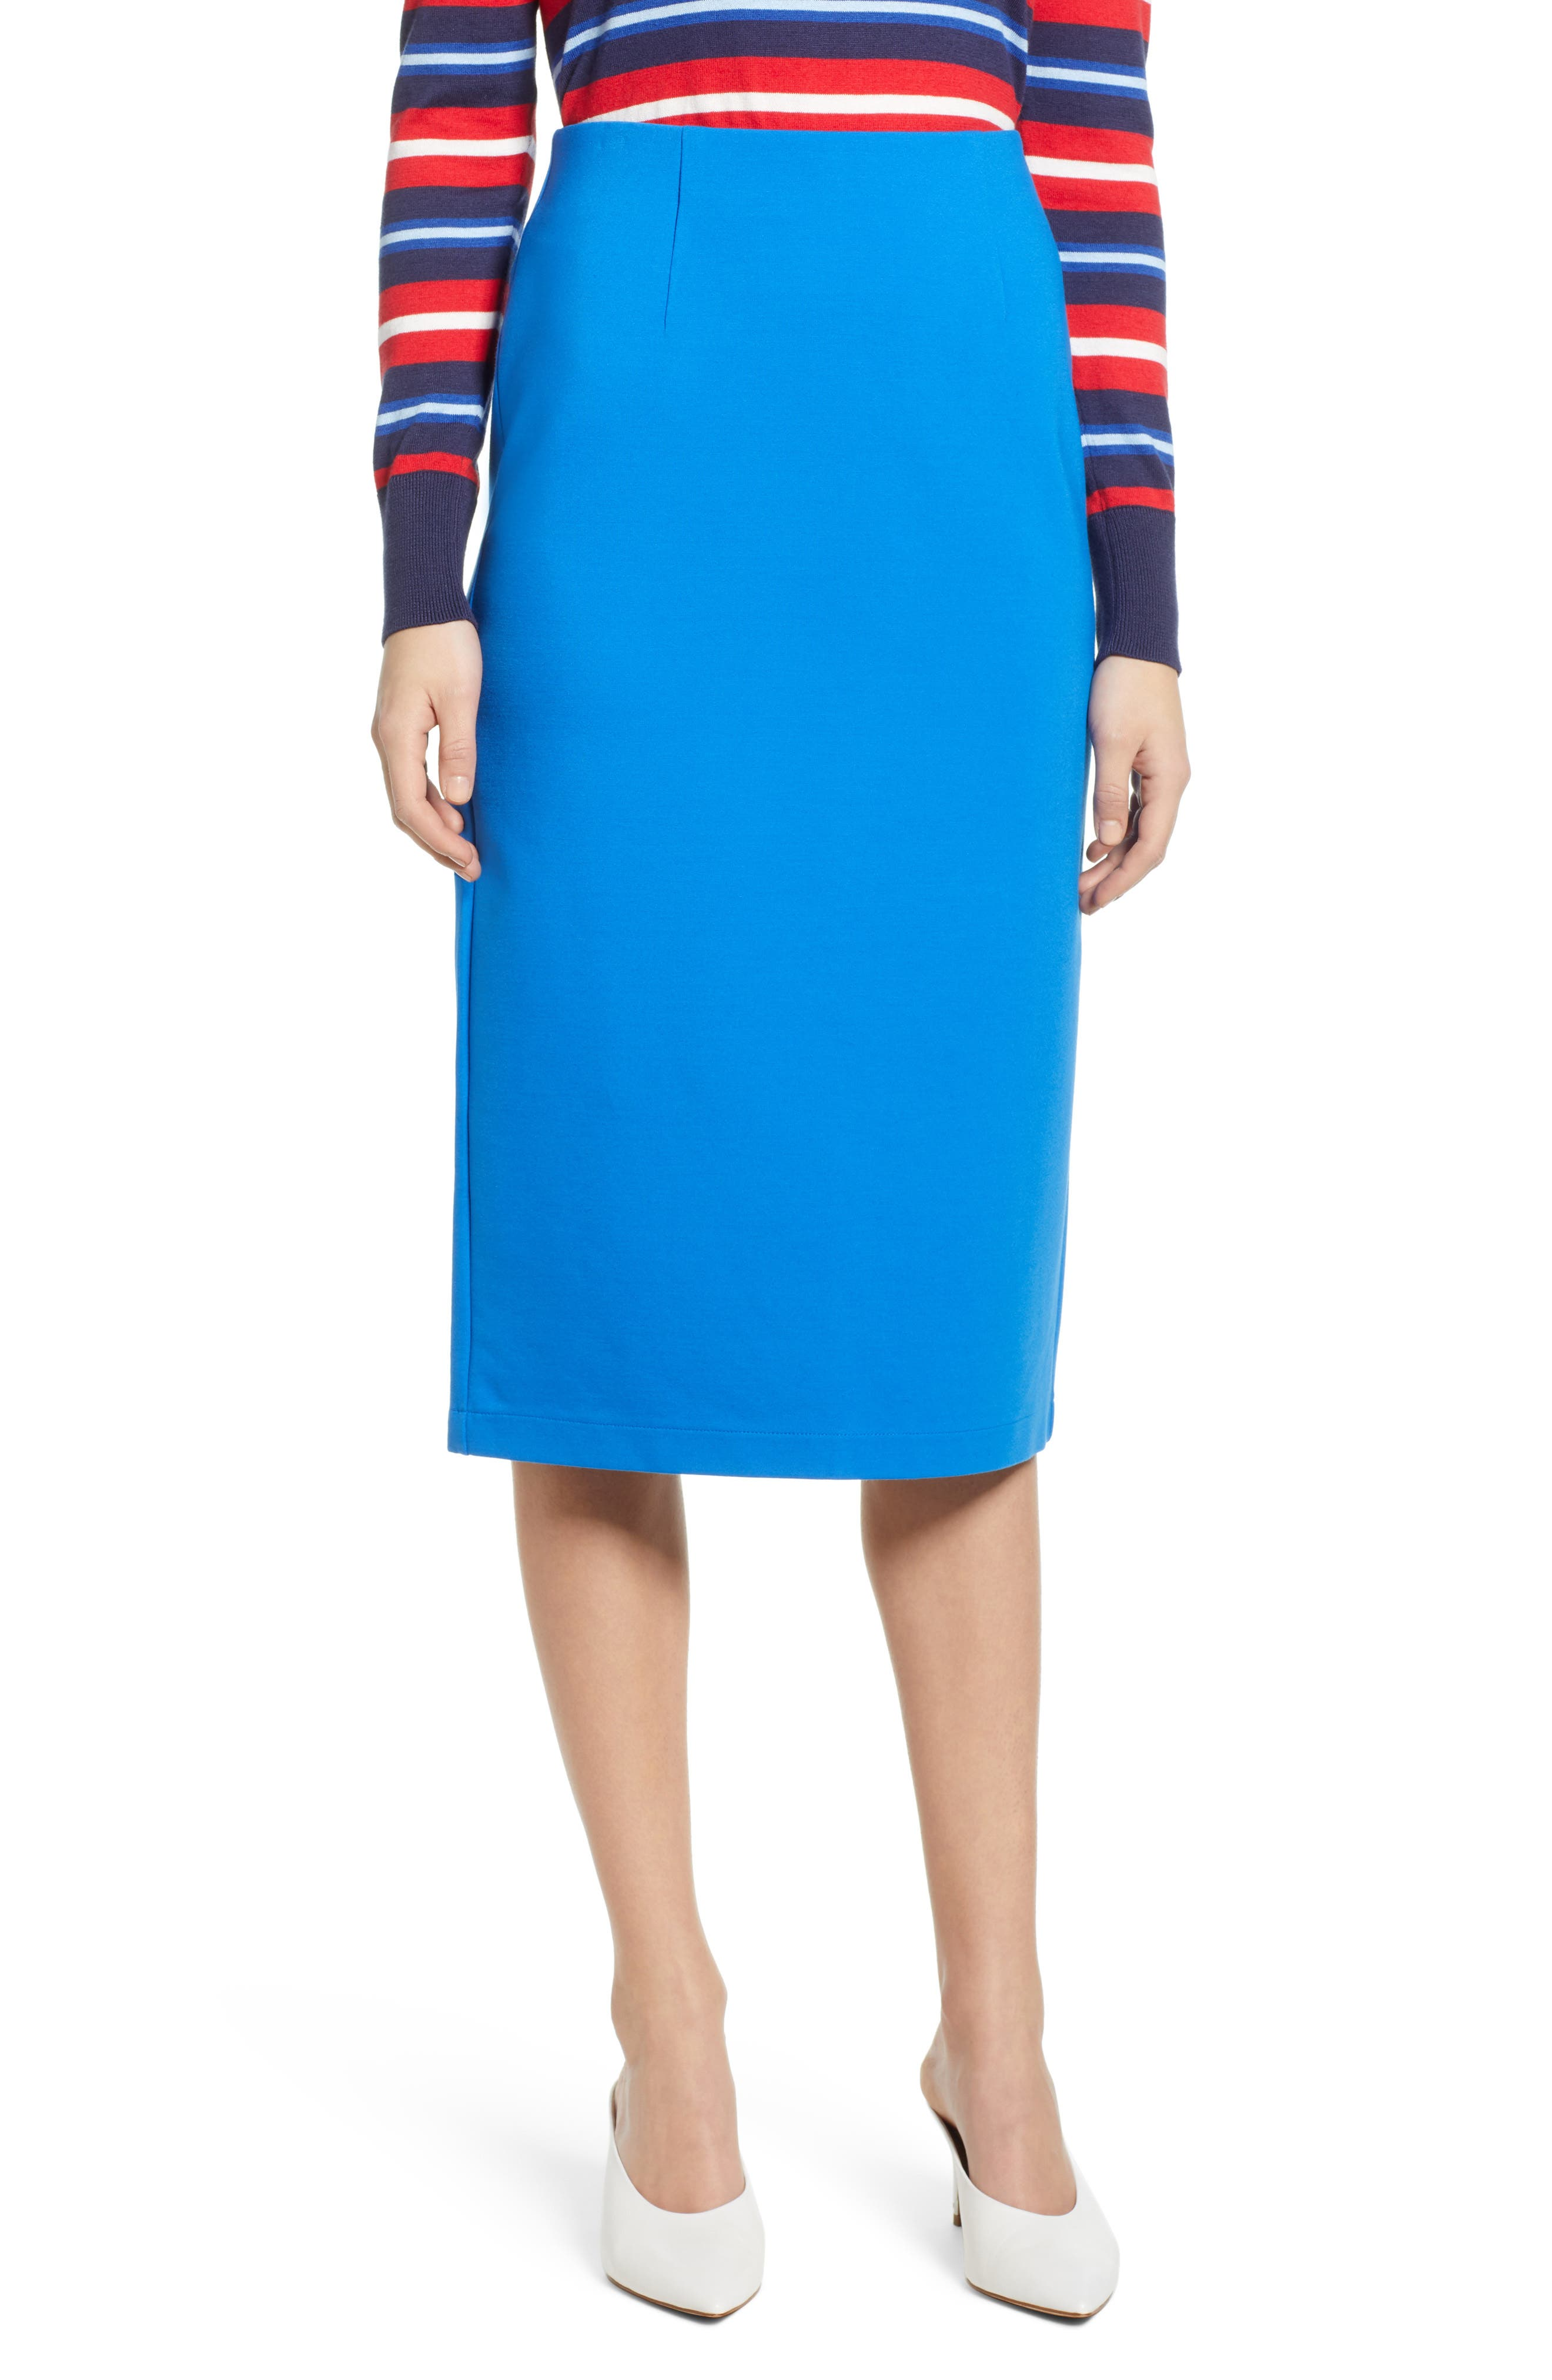 Women's Clothing Clothing, Shoes & Accessories Body By Victoria Brown Herringbone Pencil Skirt Size 0 Fine Quality